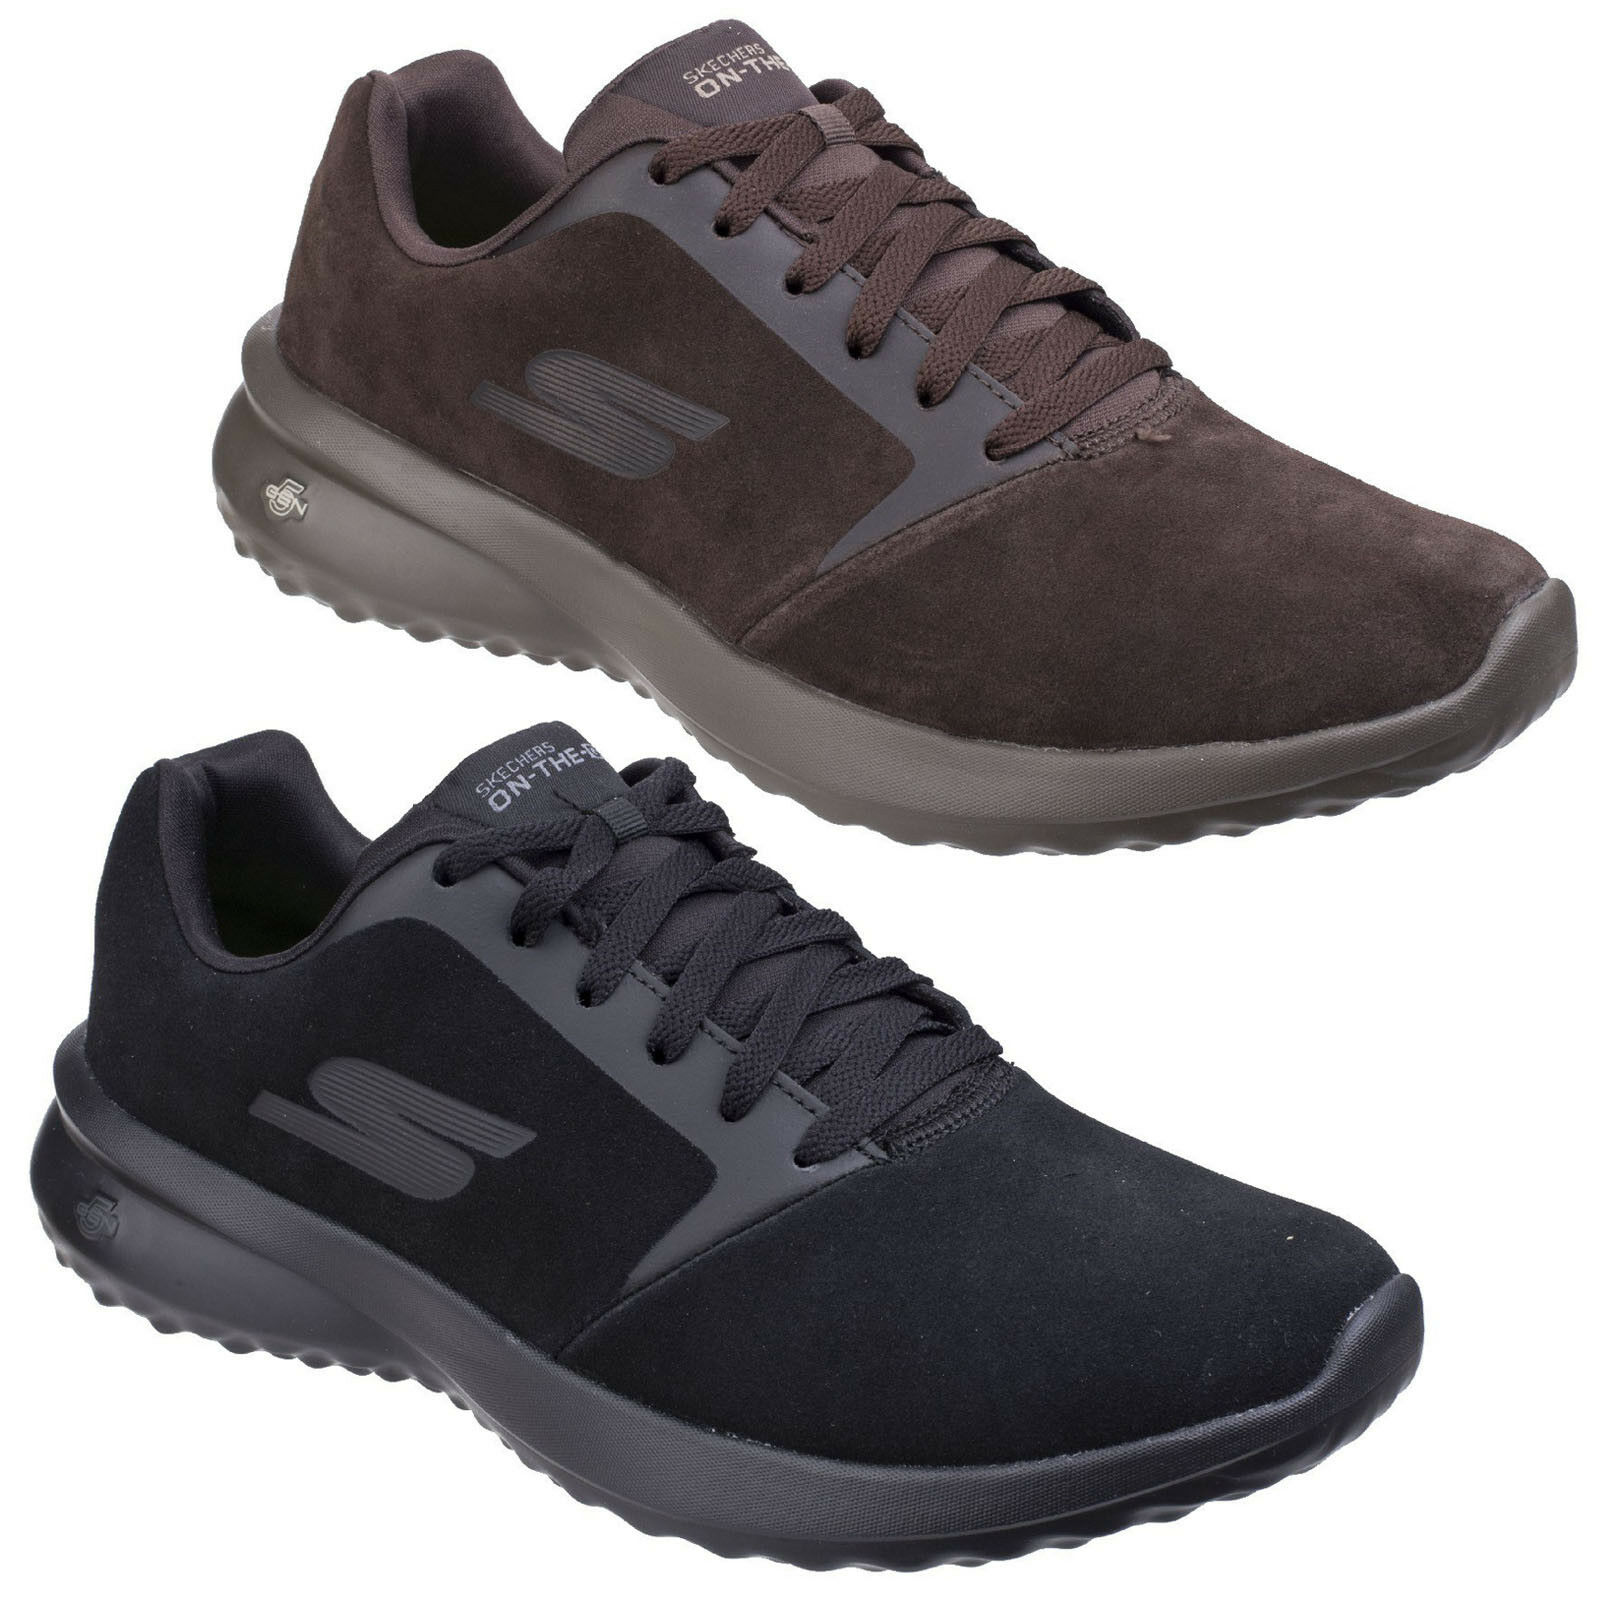 Skechers On The Go City 3.0 Trainers Lace Up Sports Shoes Mens